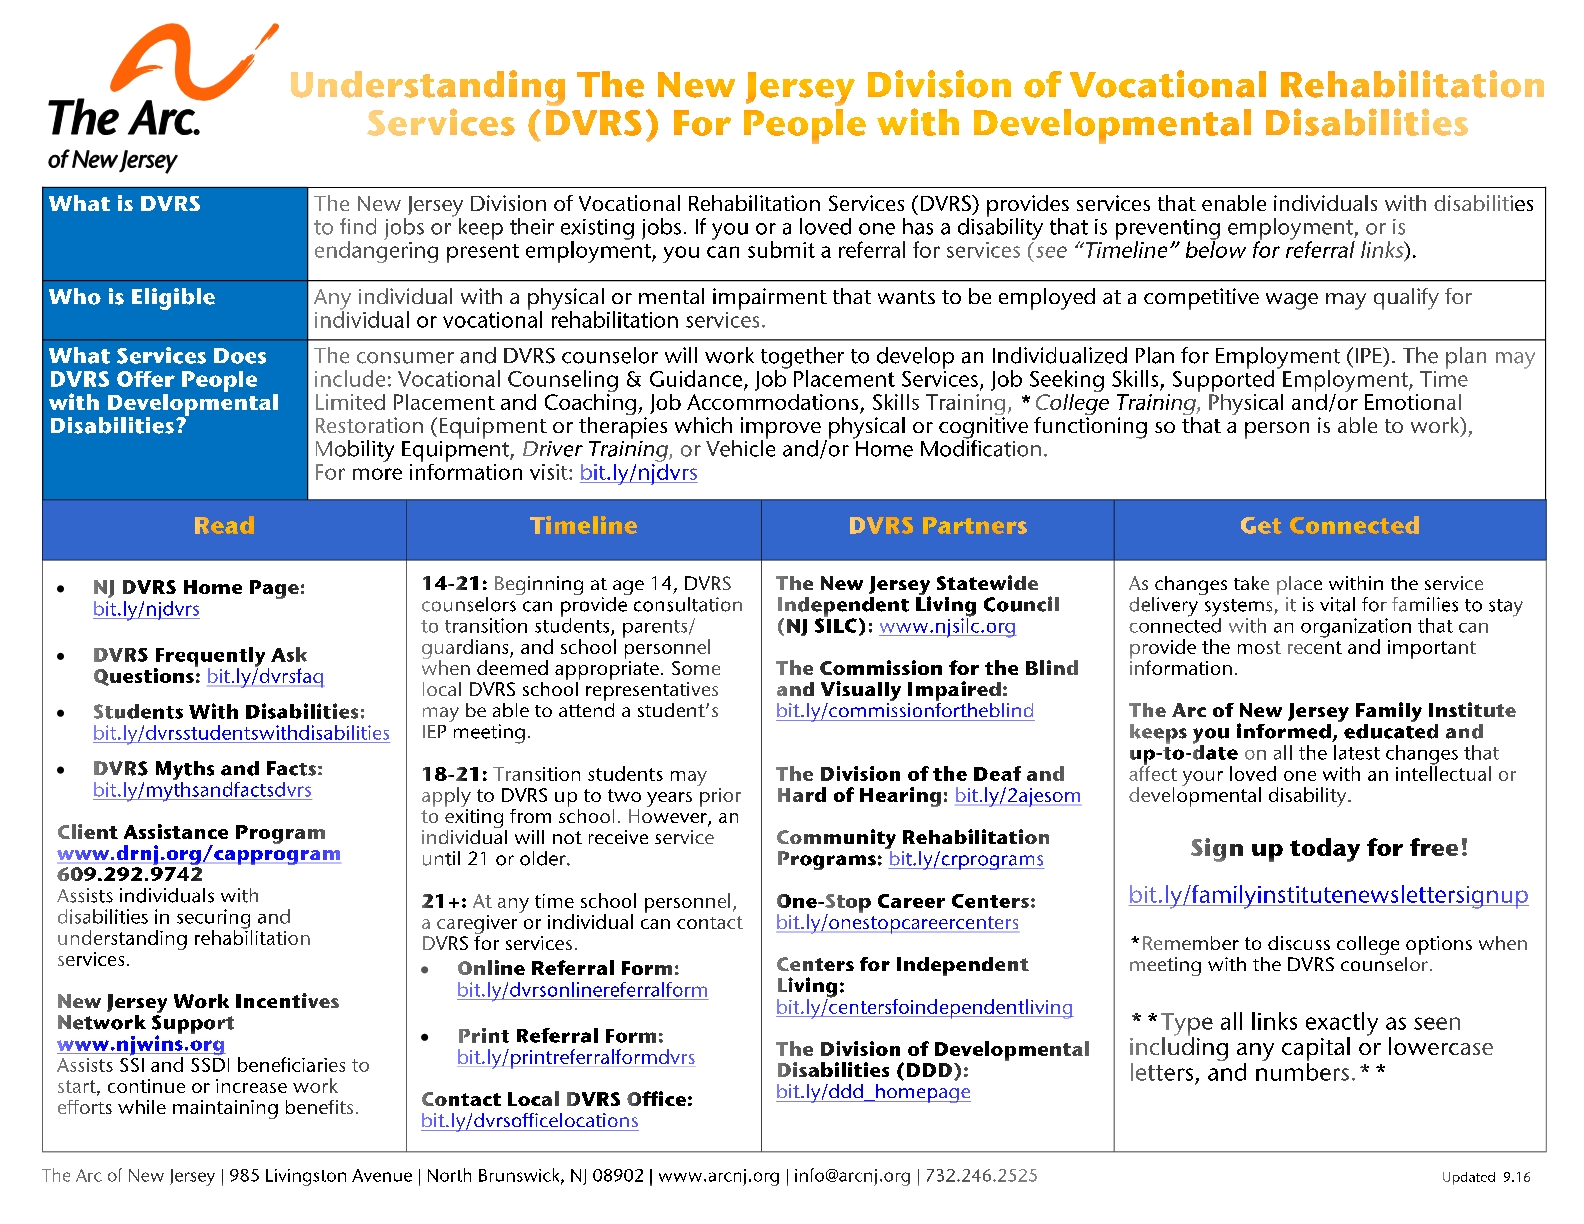 Understanding The New Jersey Division of Vocational Rehabilitation Services (DVRS) For People with Developmental Disabilities